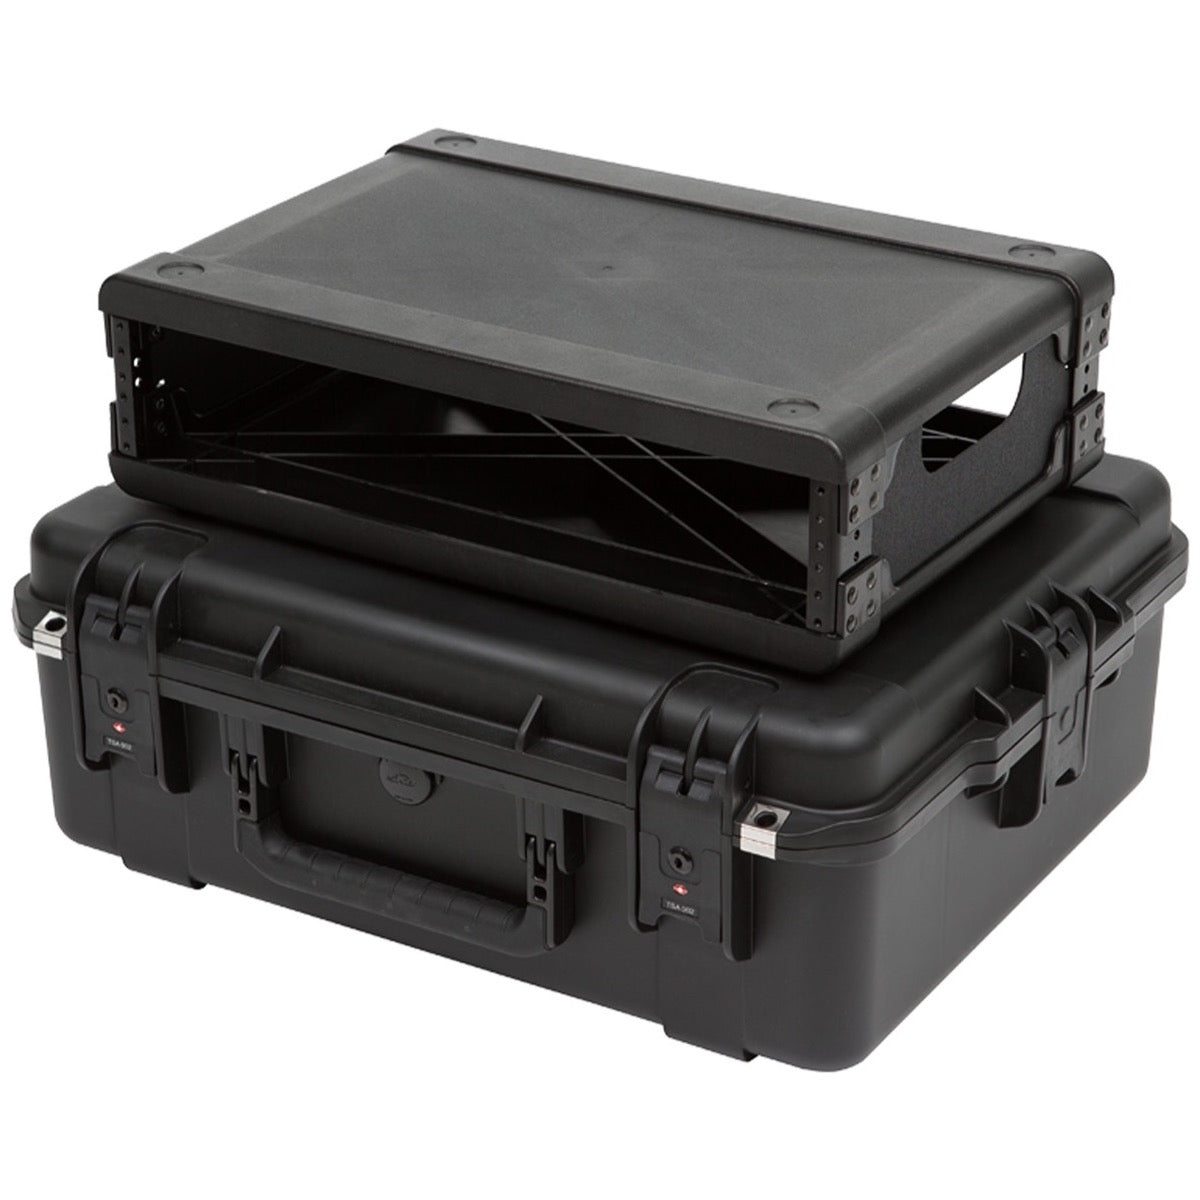 SKB iSeries Fly Rack Case, 3i-2217M82U, 2-Space